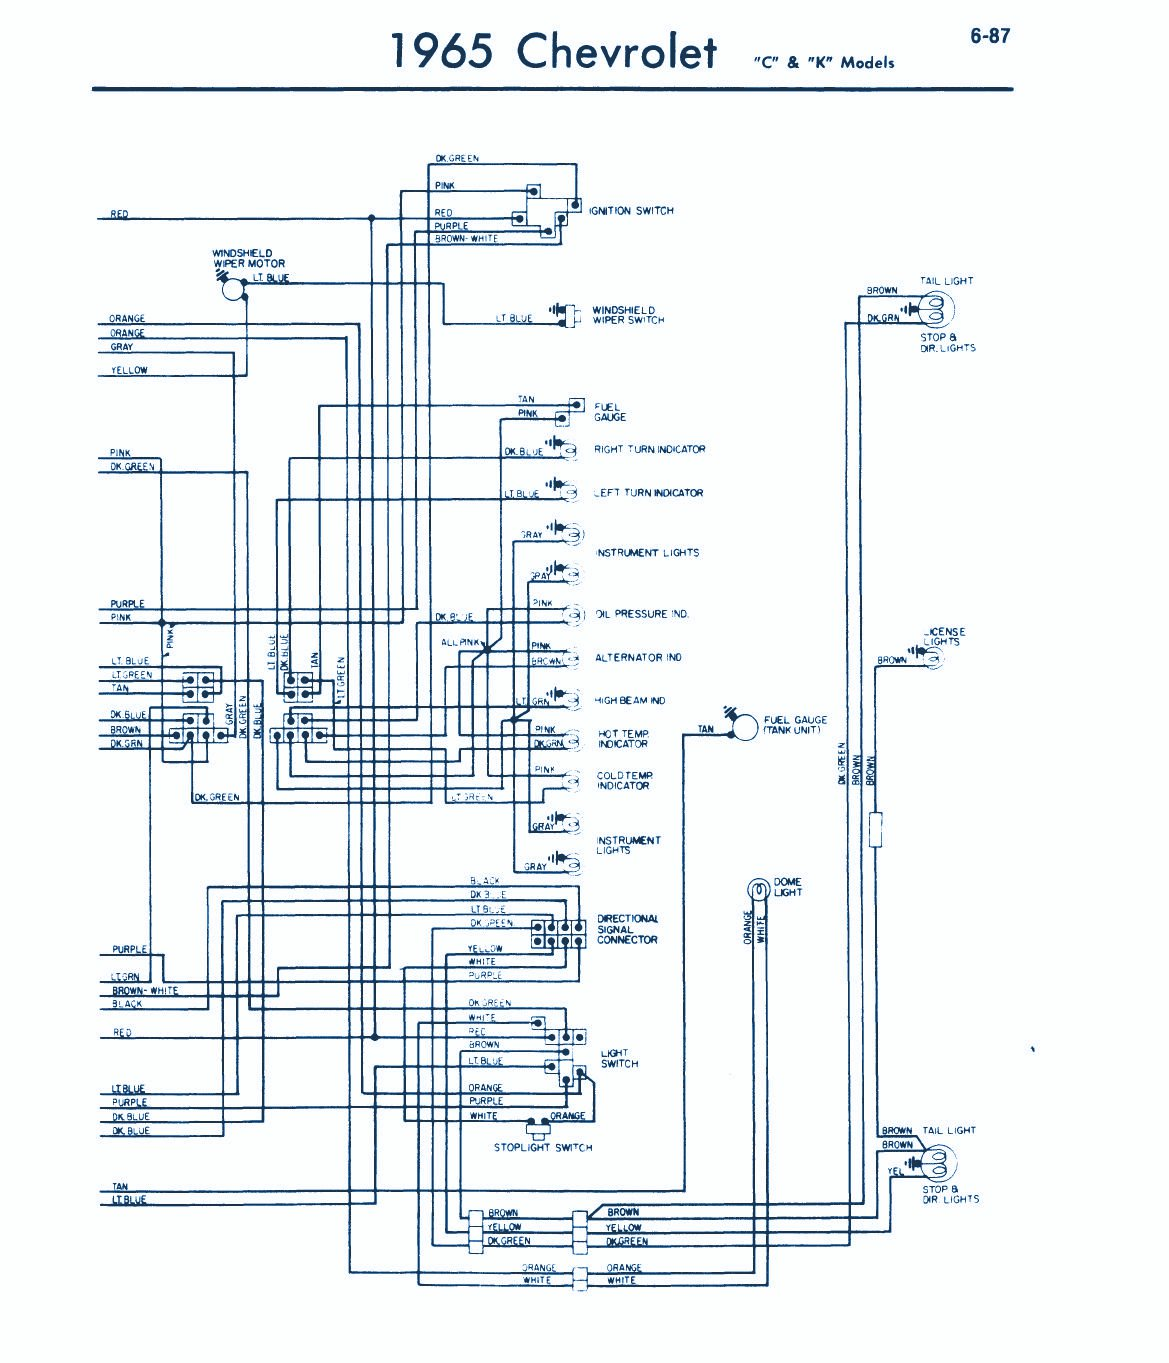 1965 Gm Stereo Wiring Diagram Free For You Buick Alternator Chevrolet Auto Diagrams Lucerne Gmc Factory